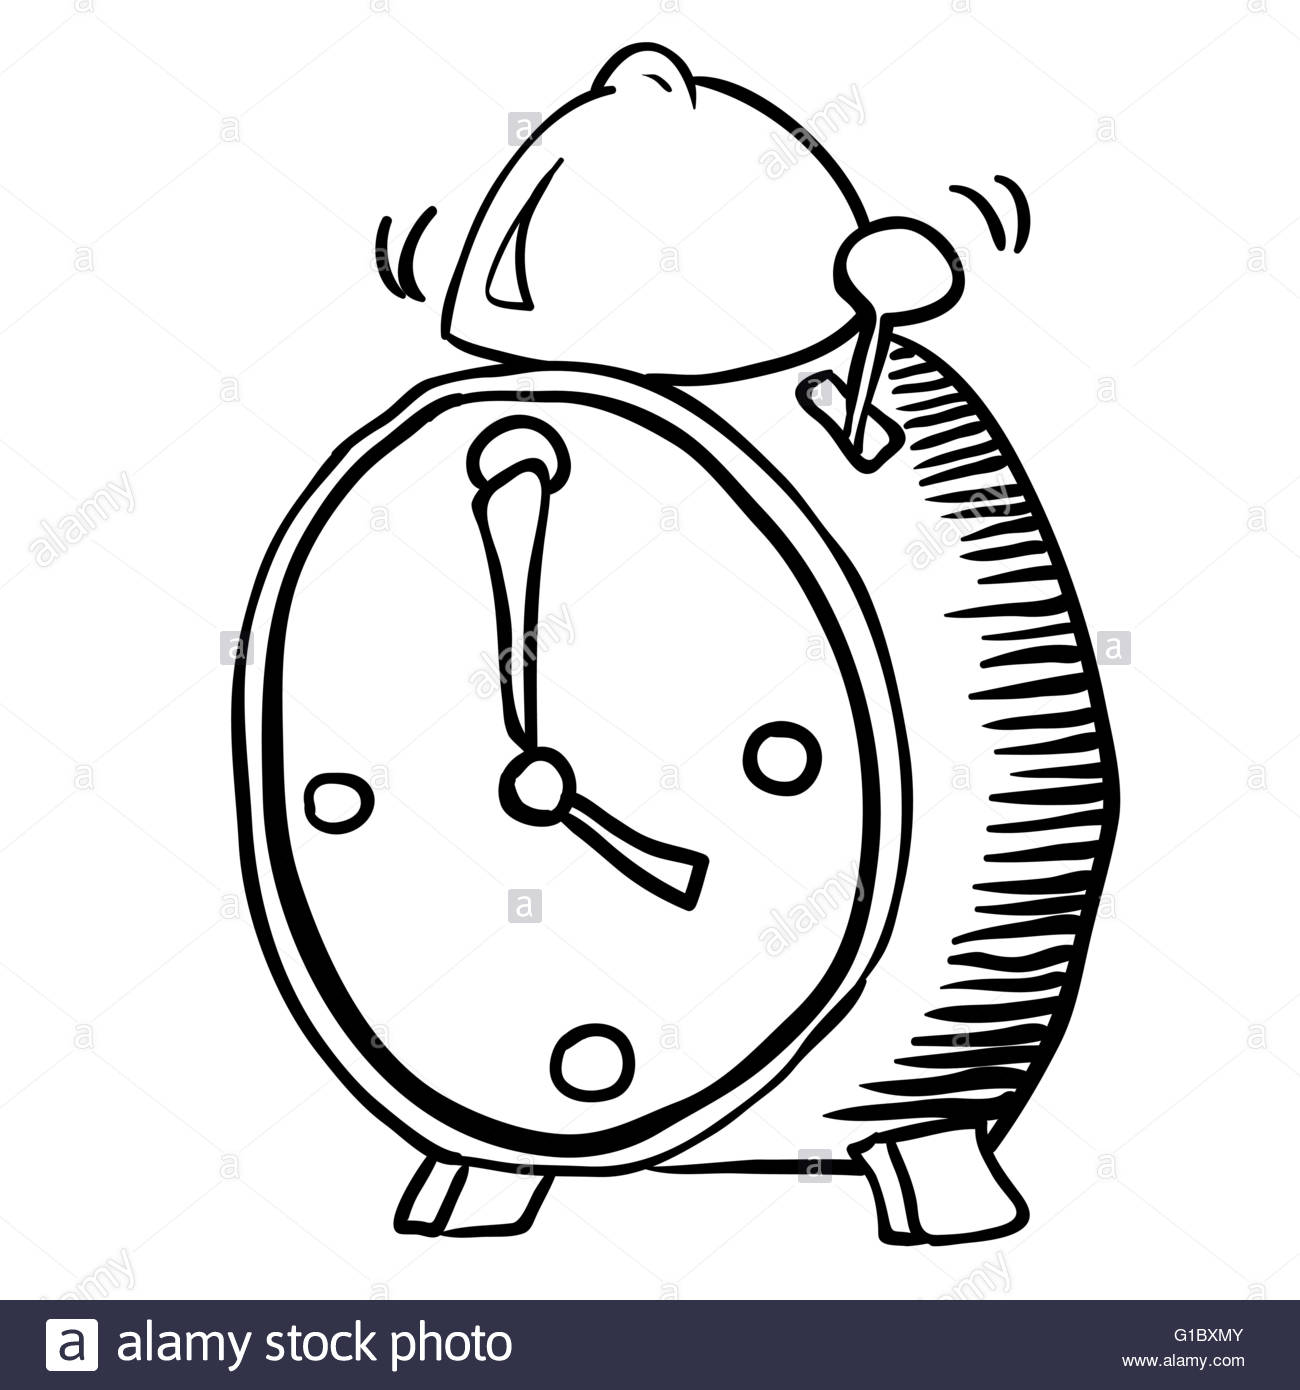 1300x1390 Simple Black And White Alarm Clock Cartoon Stock Vector Art